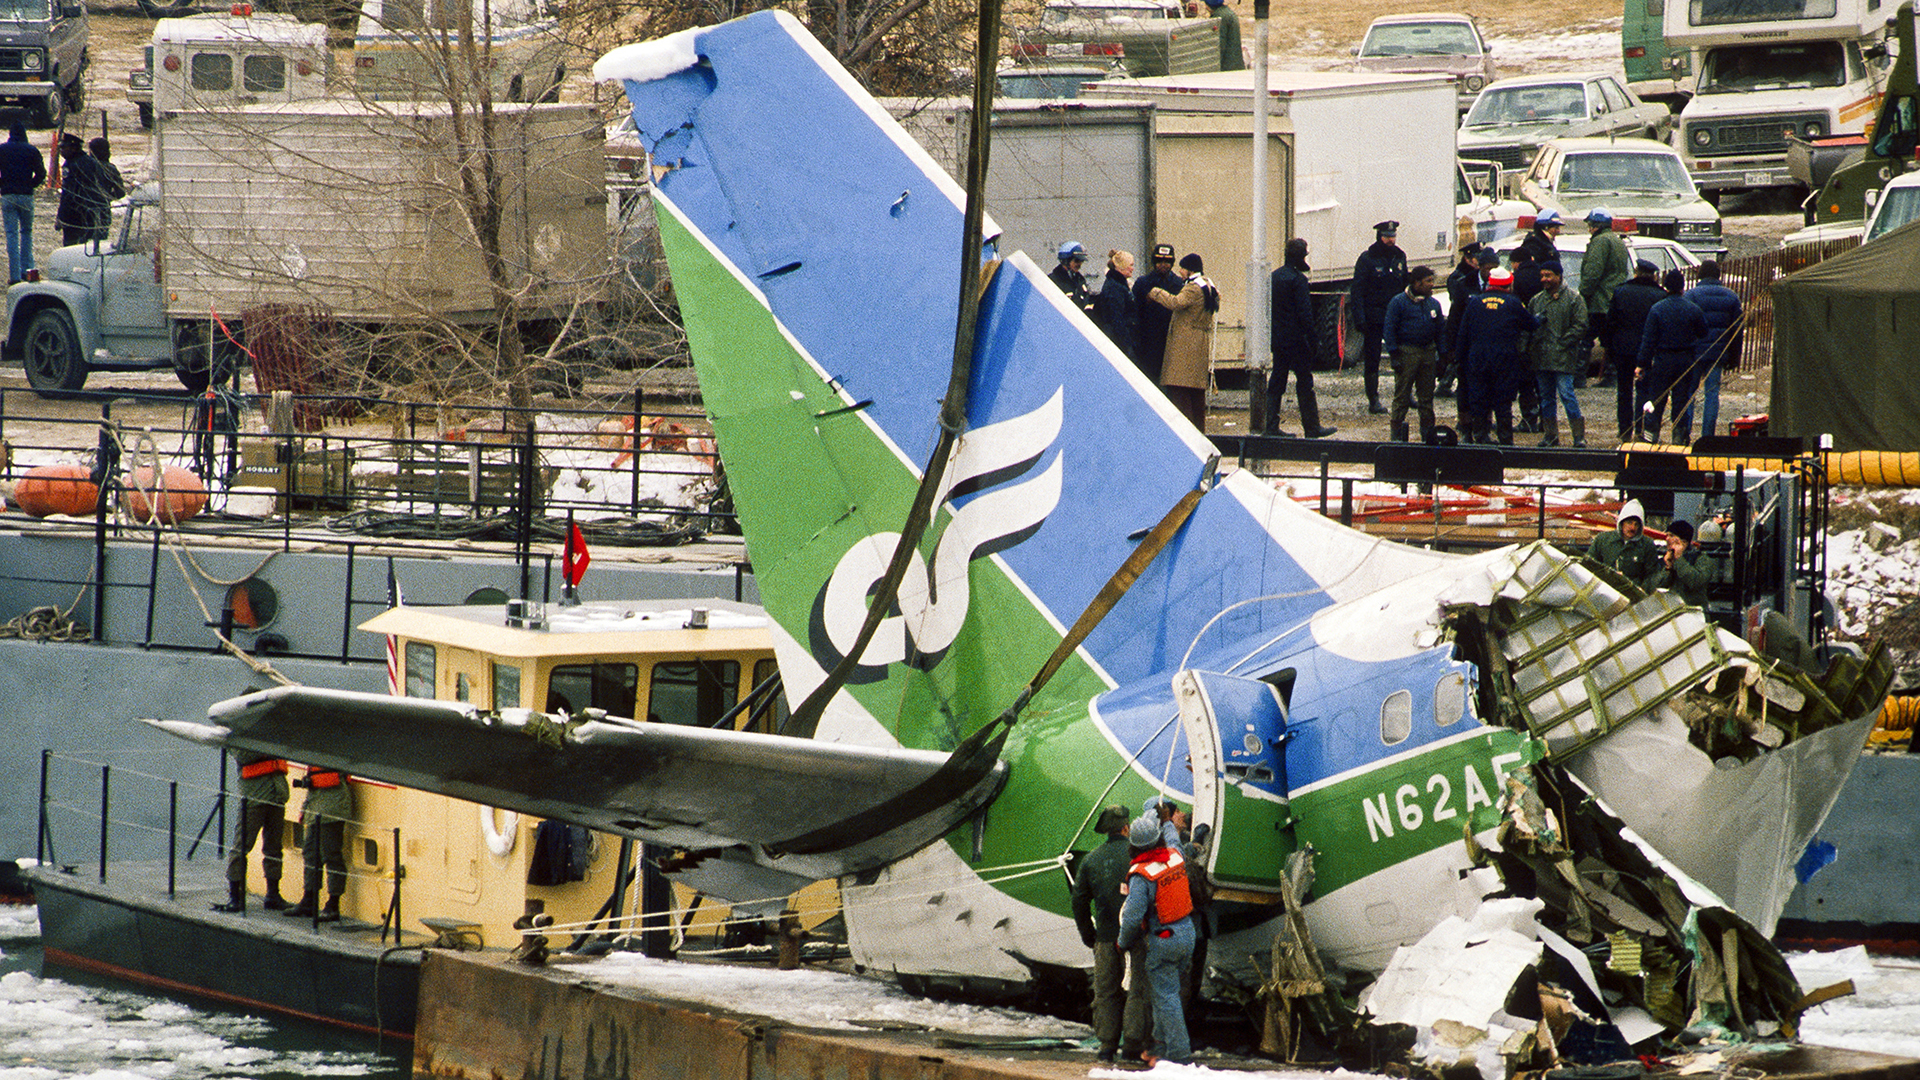 Working an Air-Crash Aftermath: D.C. Cop Recounts Recovery Efforts After the 1982 Air Florida Tragedy